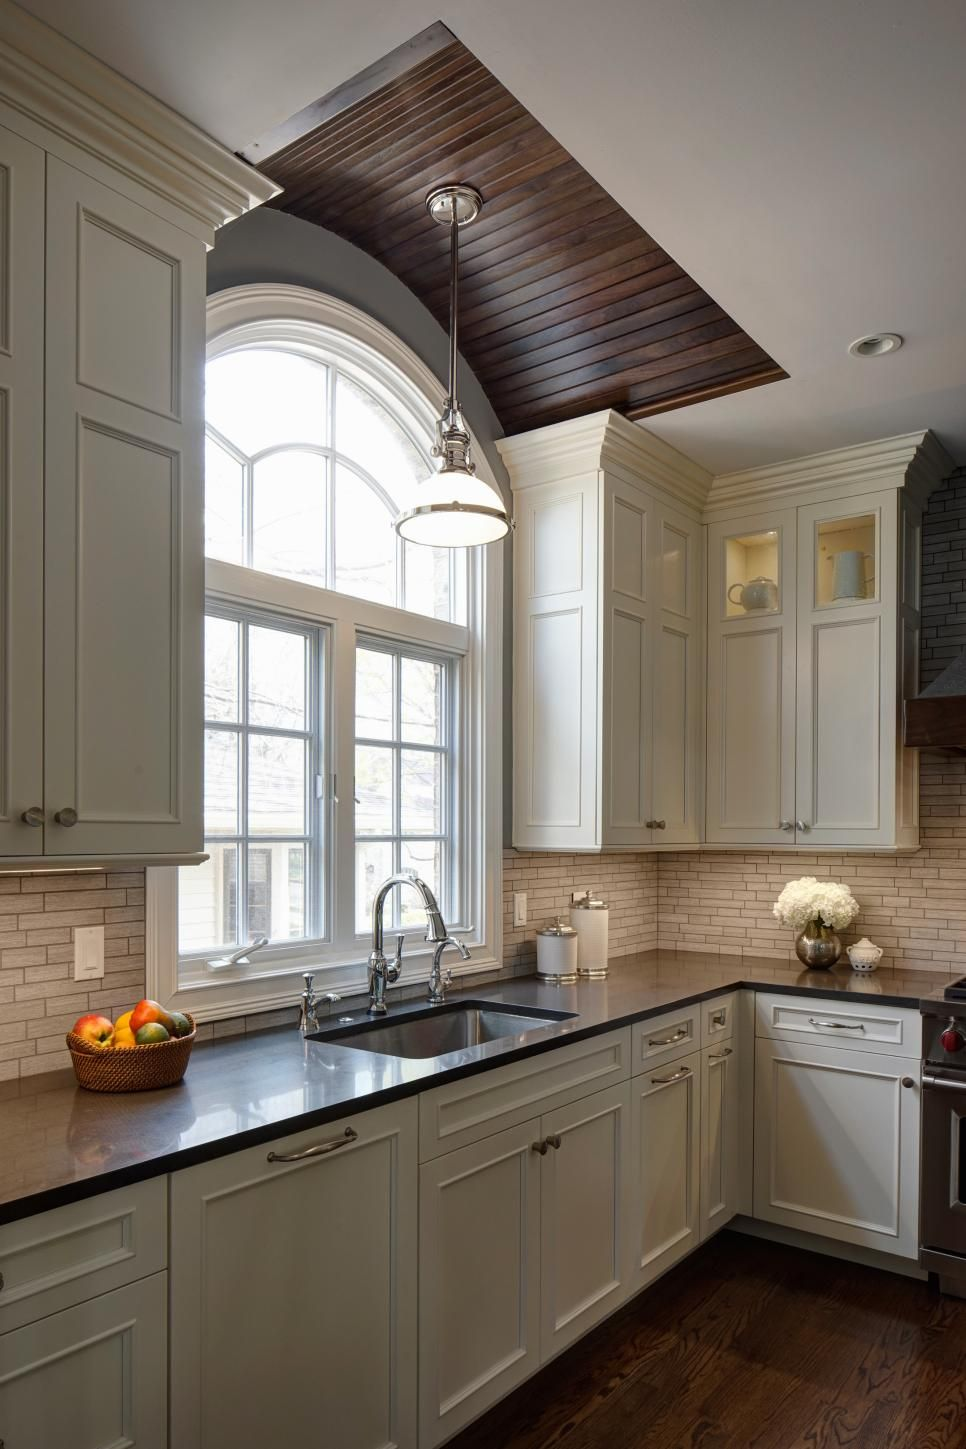 Rooms Viewer Rooms And Spaces Design Ideas Photos Of Kitchen Bath And